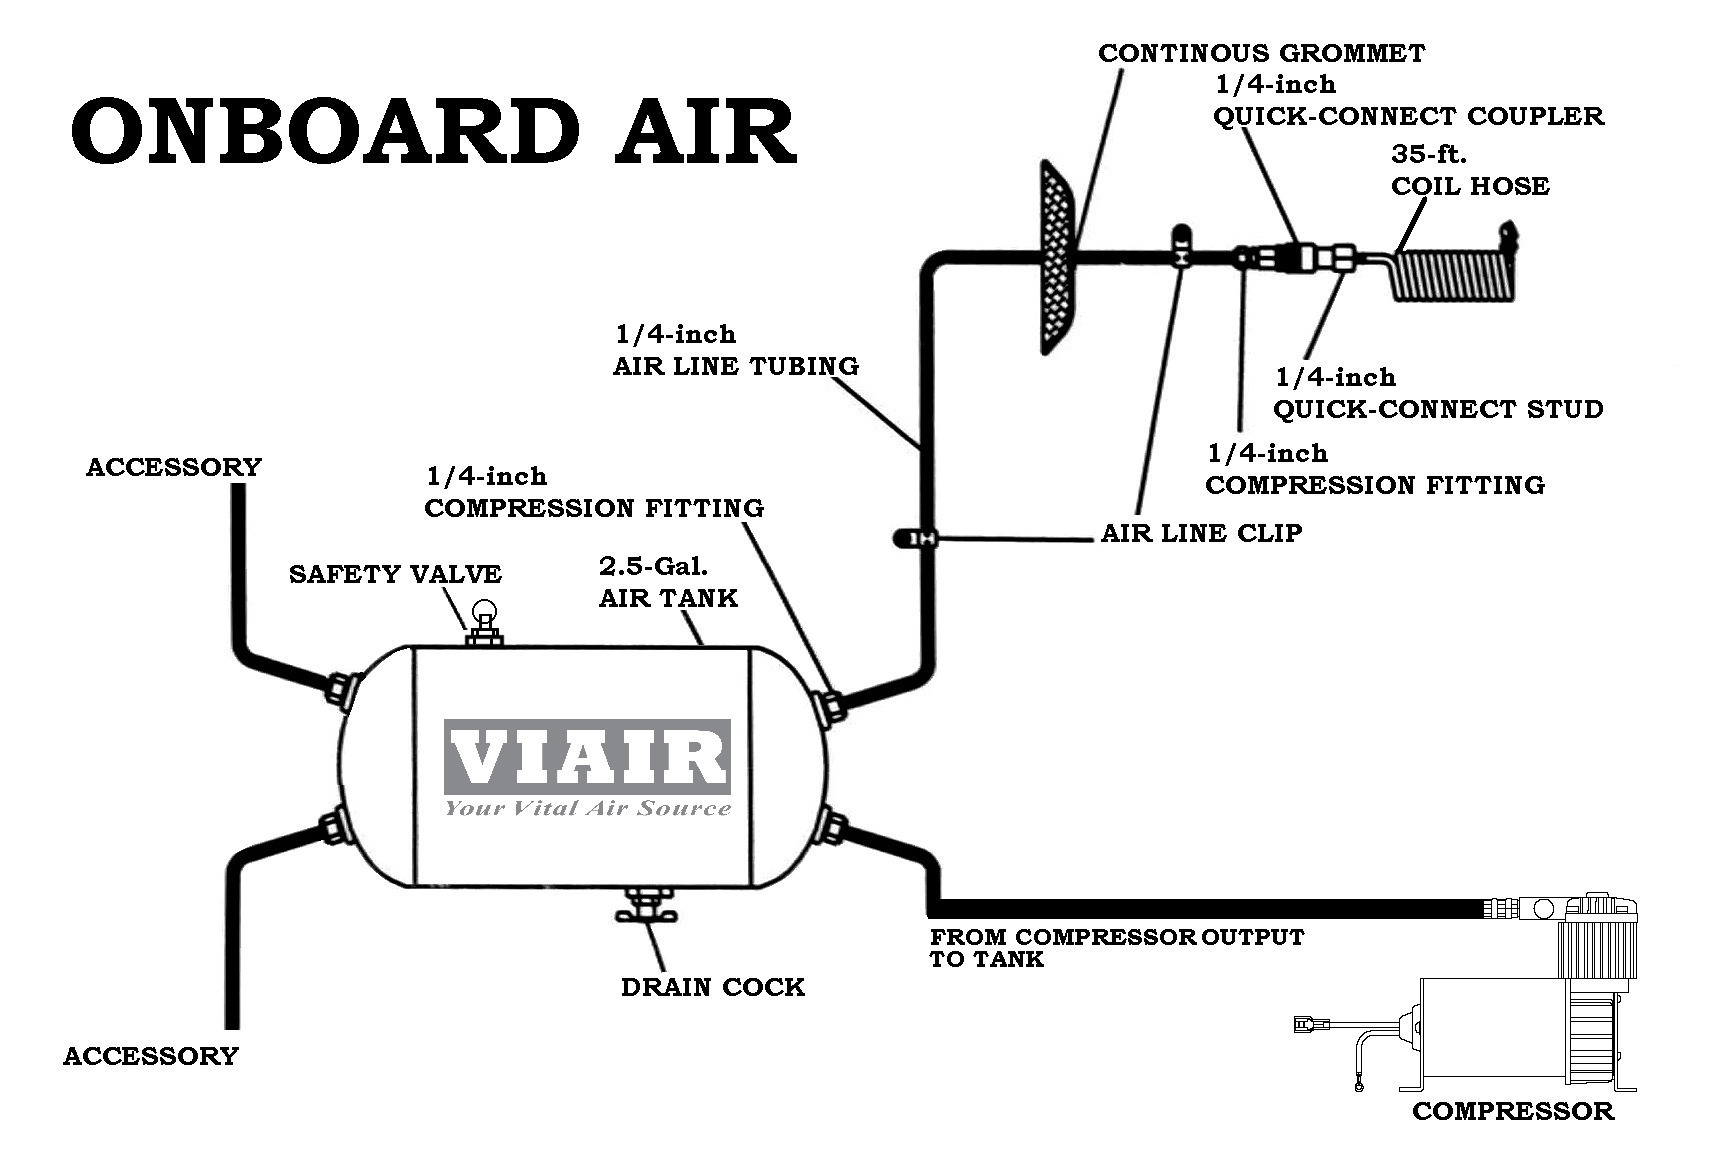 onboard_air wiring diagram for car air horns wirdig readingrat net kleinn air horn wiring diagram at cos-gaming.co